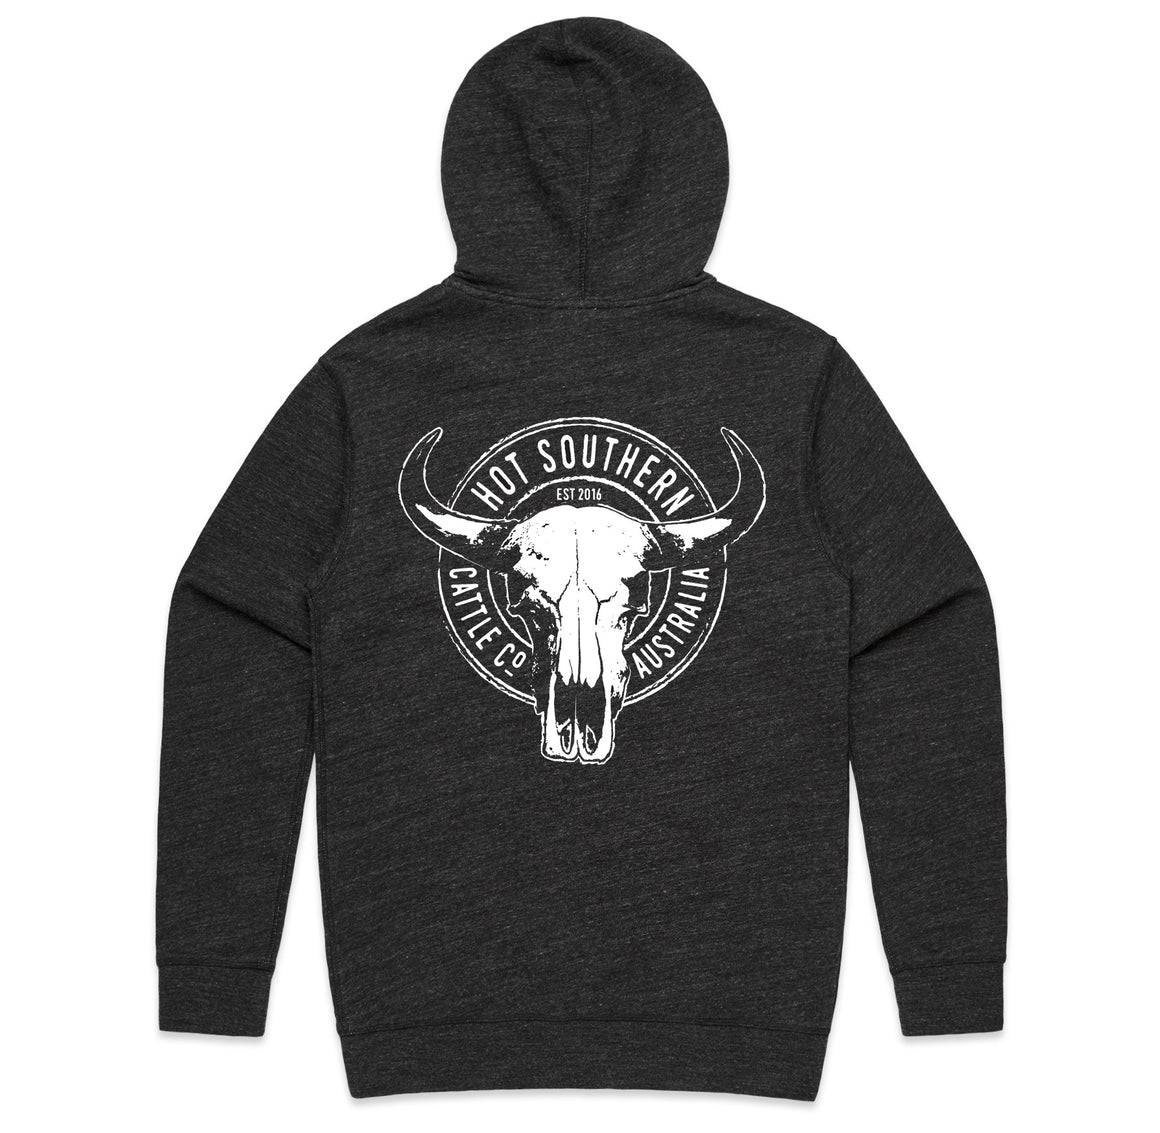 Hot Southern Cattle Co Black Fleck Premium Zip Up Hoodie - Unisex Fit - [Only ONE size Small LEFT] 30% OFF [NO Refunds/Exchanges]